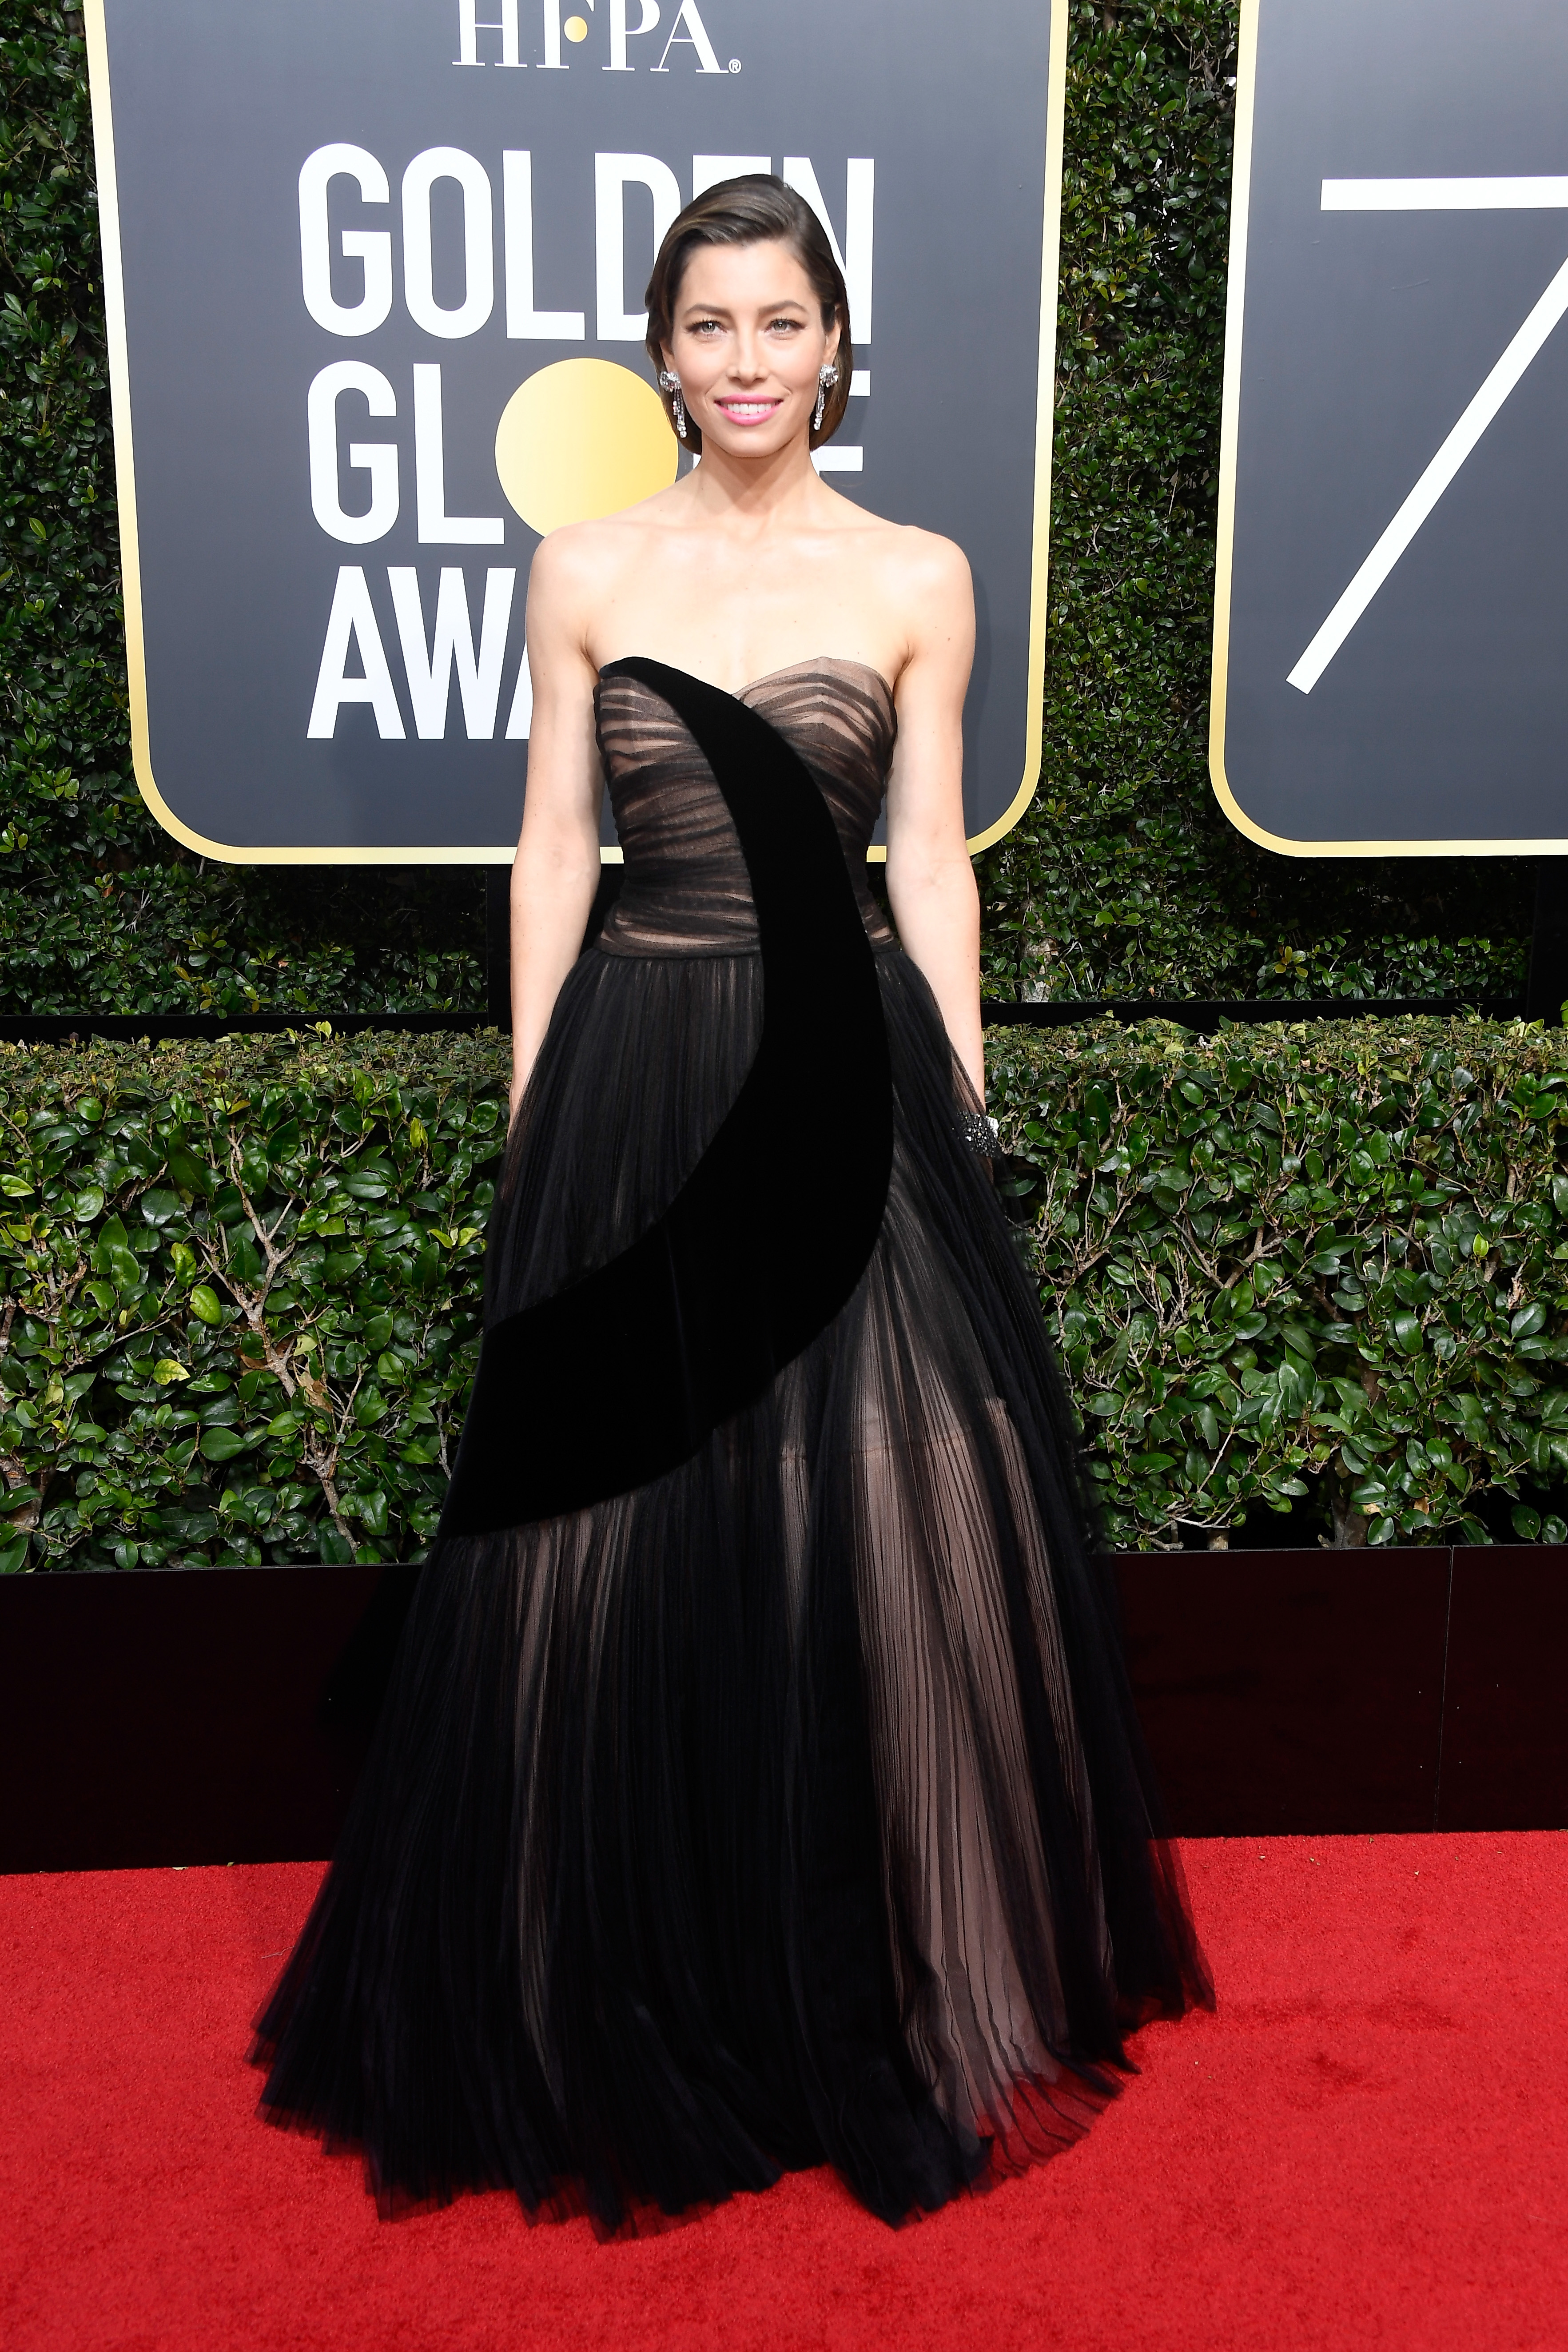 BEVERLY HILLS, CA - JANUARY 07:  Jessica Biel attends The 75th Annual Golden Globe Awards at The Beverly Hilton Hotel on January 7, 2018 in Beverly Hills, California.  (Photo by Frazer Harrison/Getty Images)